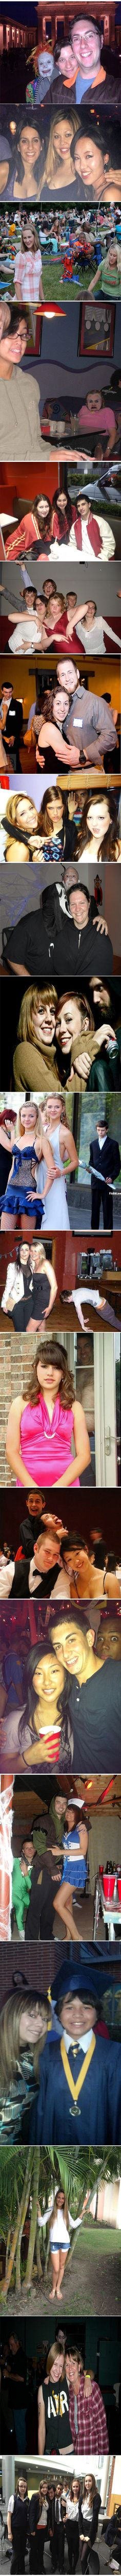 20 Super Creepy Photobombs | No Need to ApplyNo Need to Apply